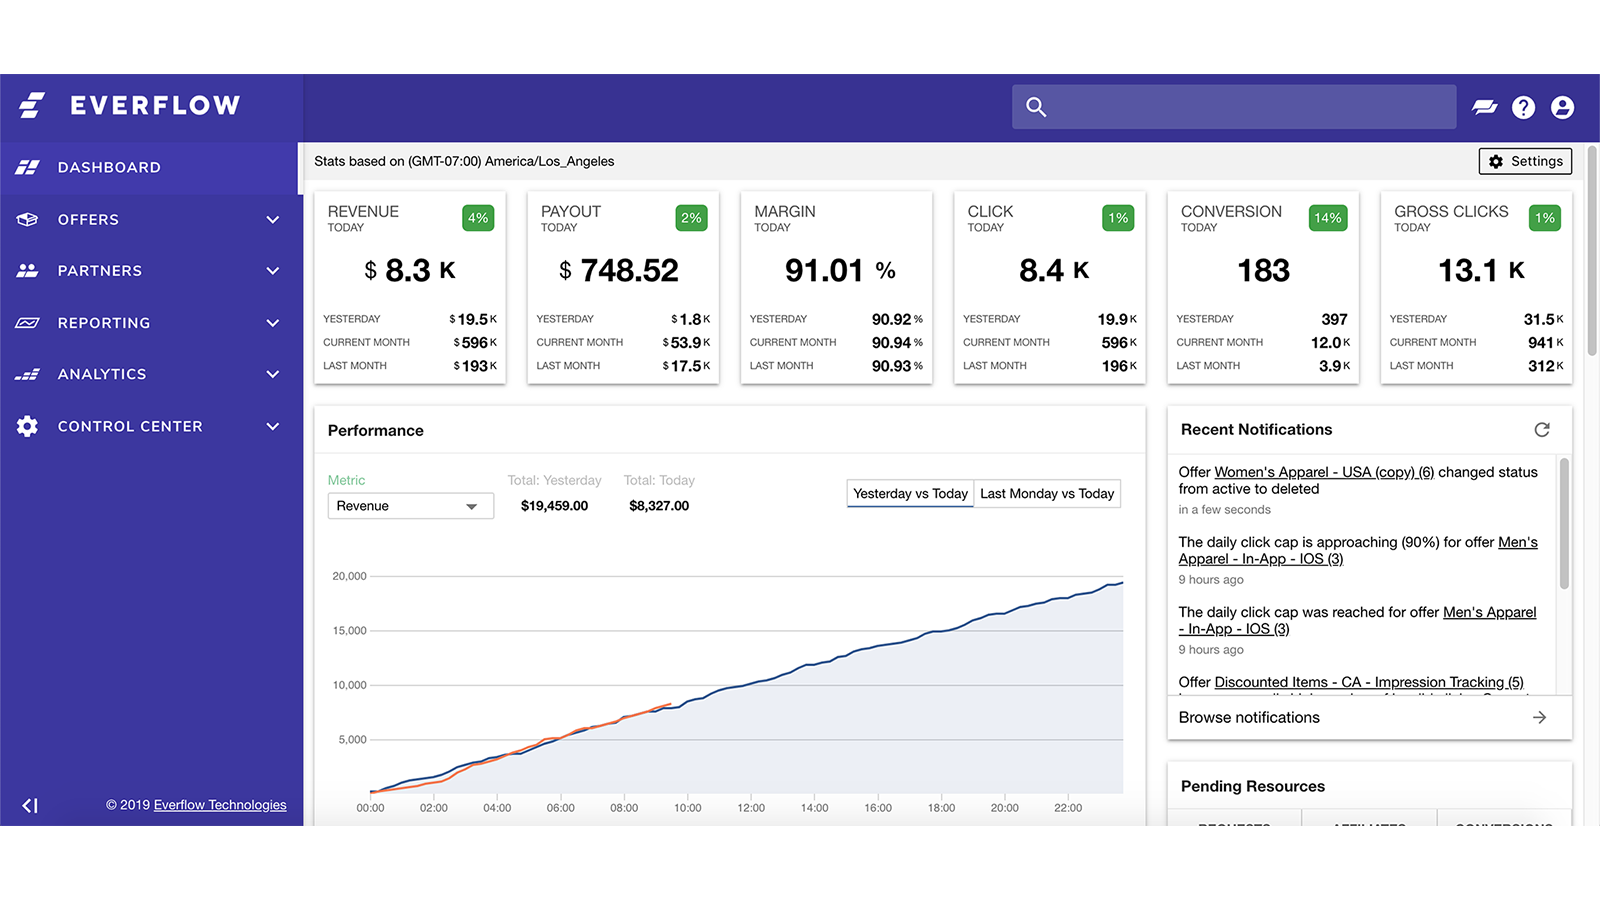 The Everflow Dashboard